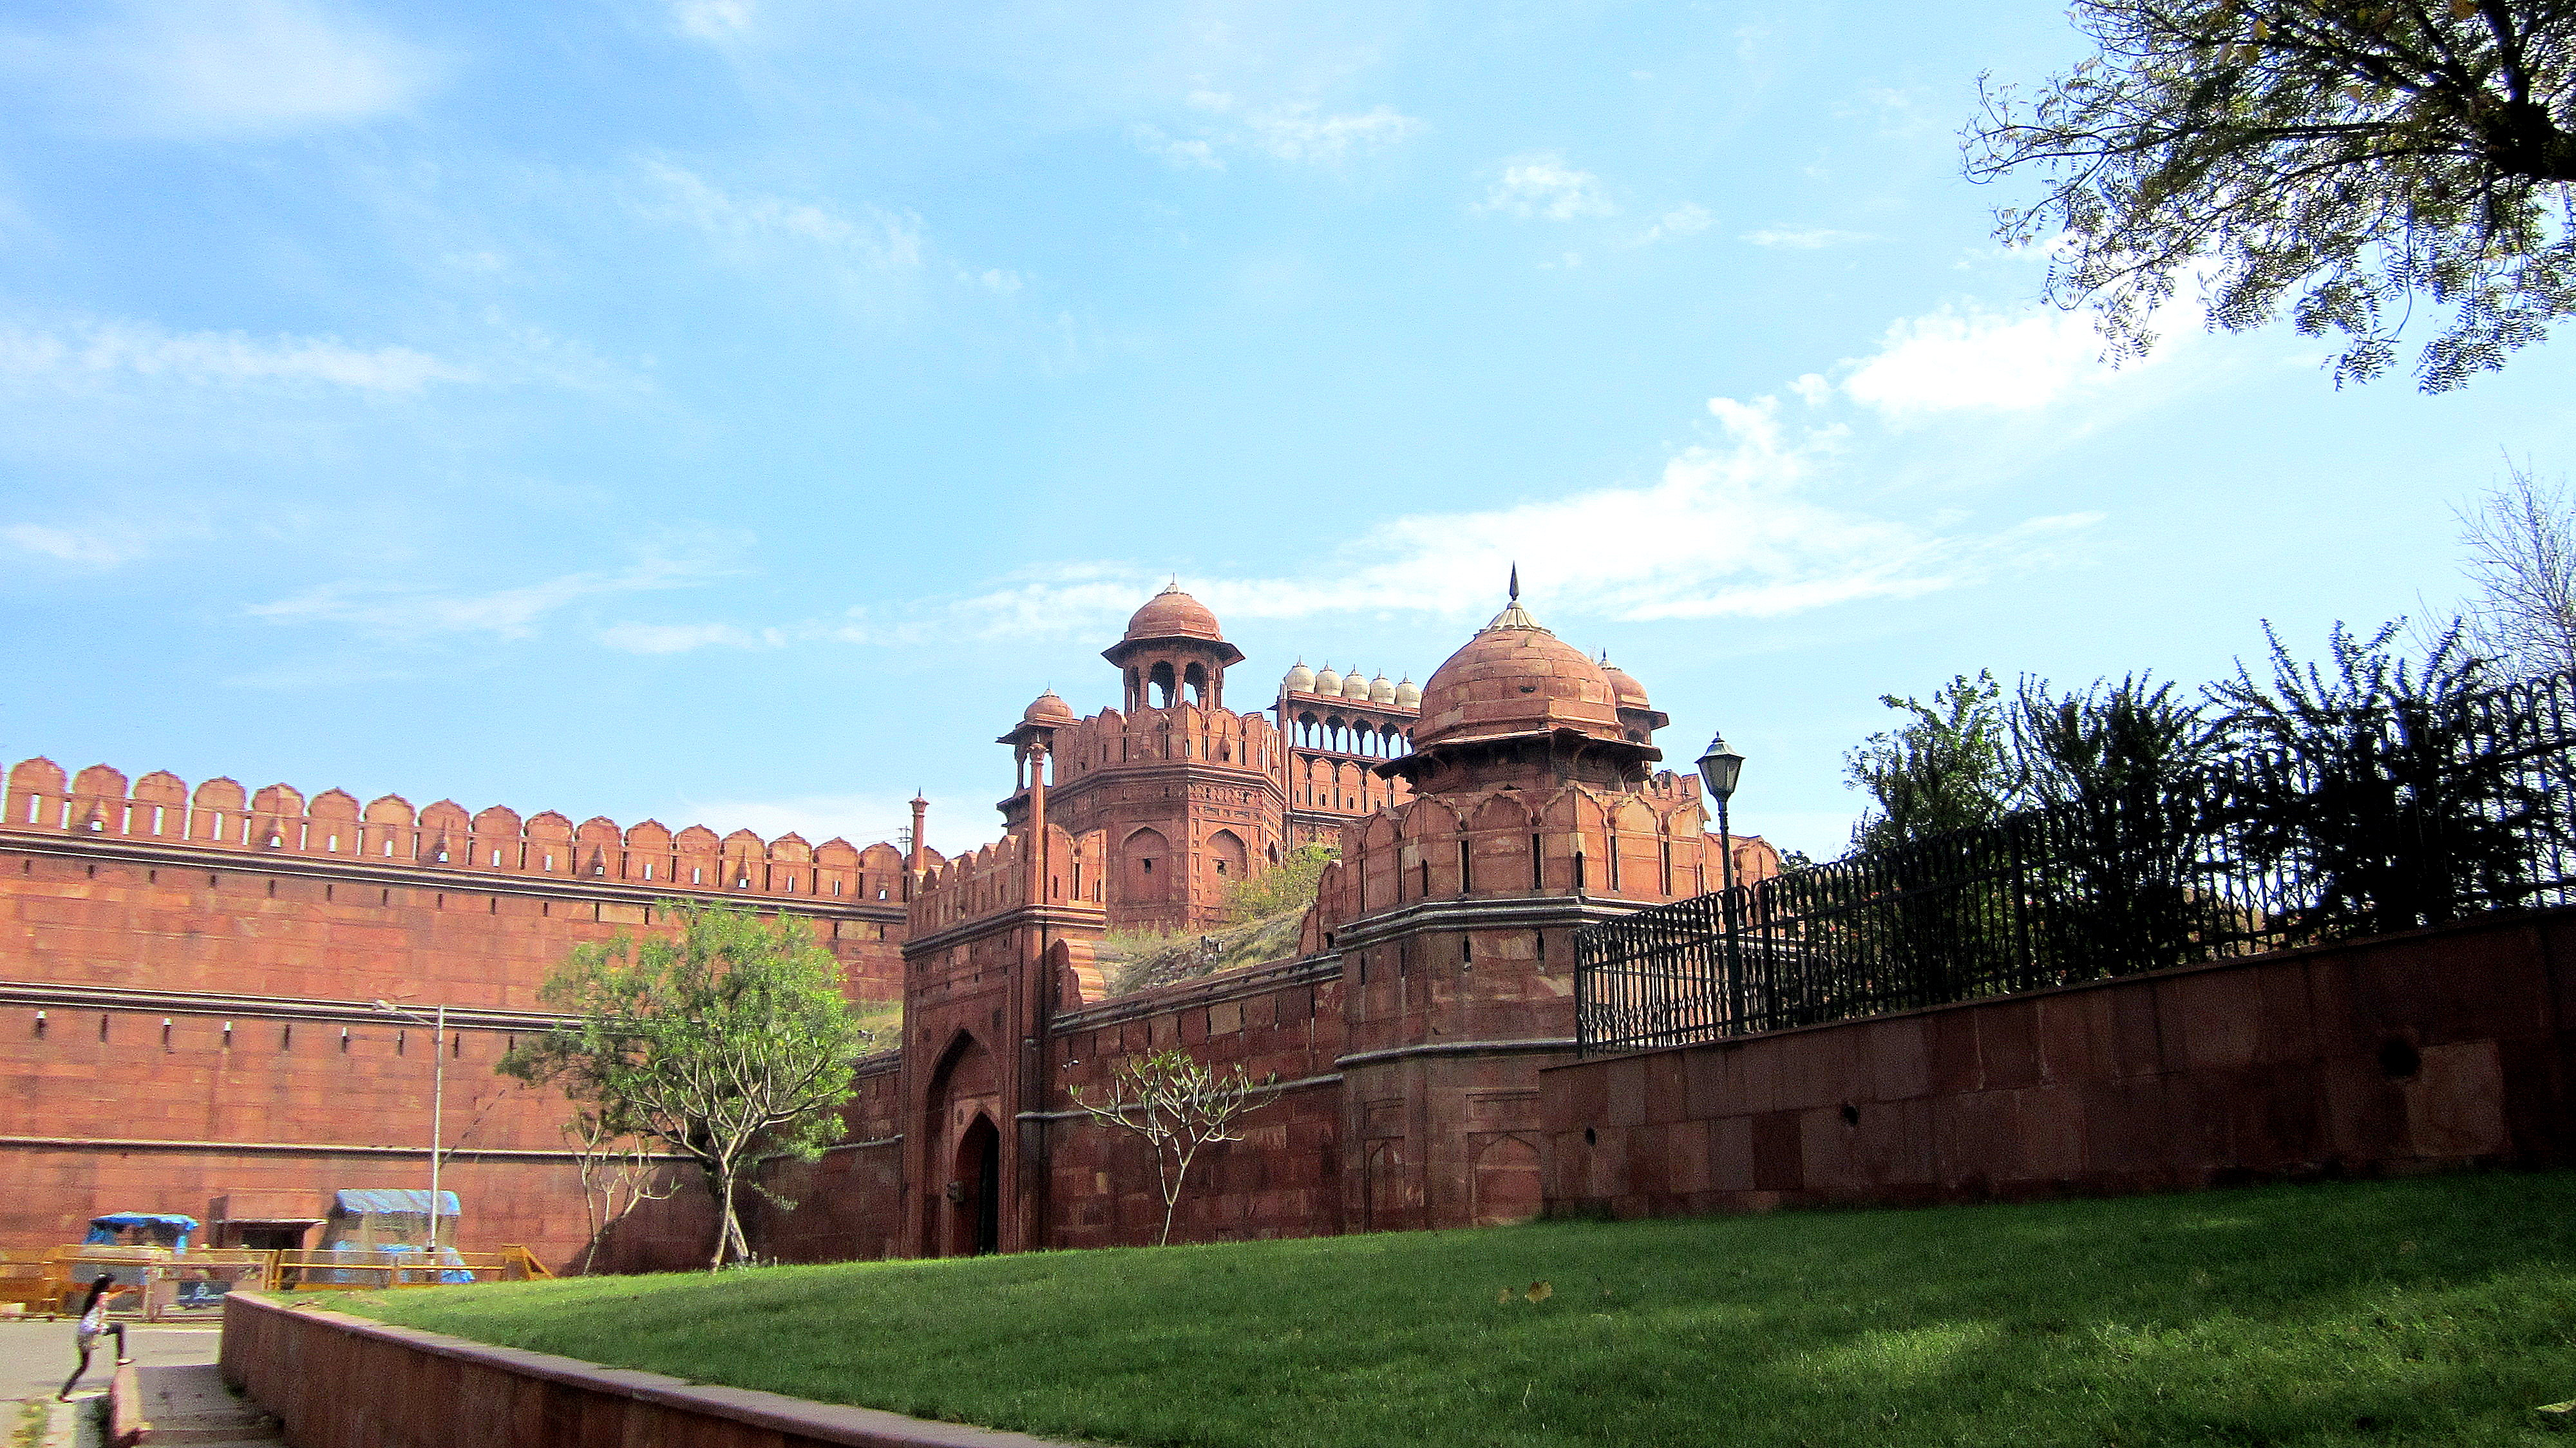 The construction of Red Fort was completed on May 13, 1648, exactly 10 years after Shahjahanbad moved his capital to Delhi